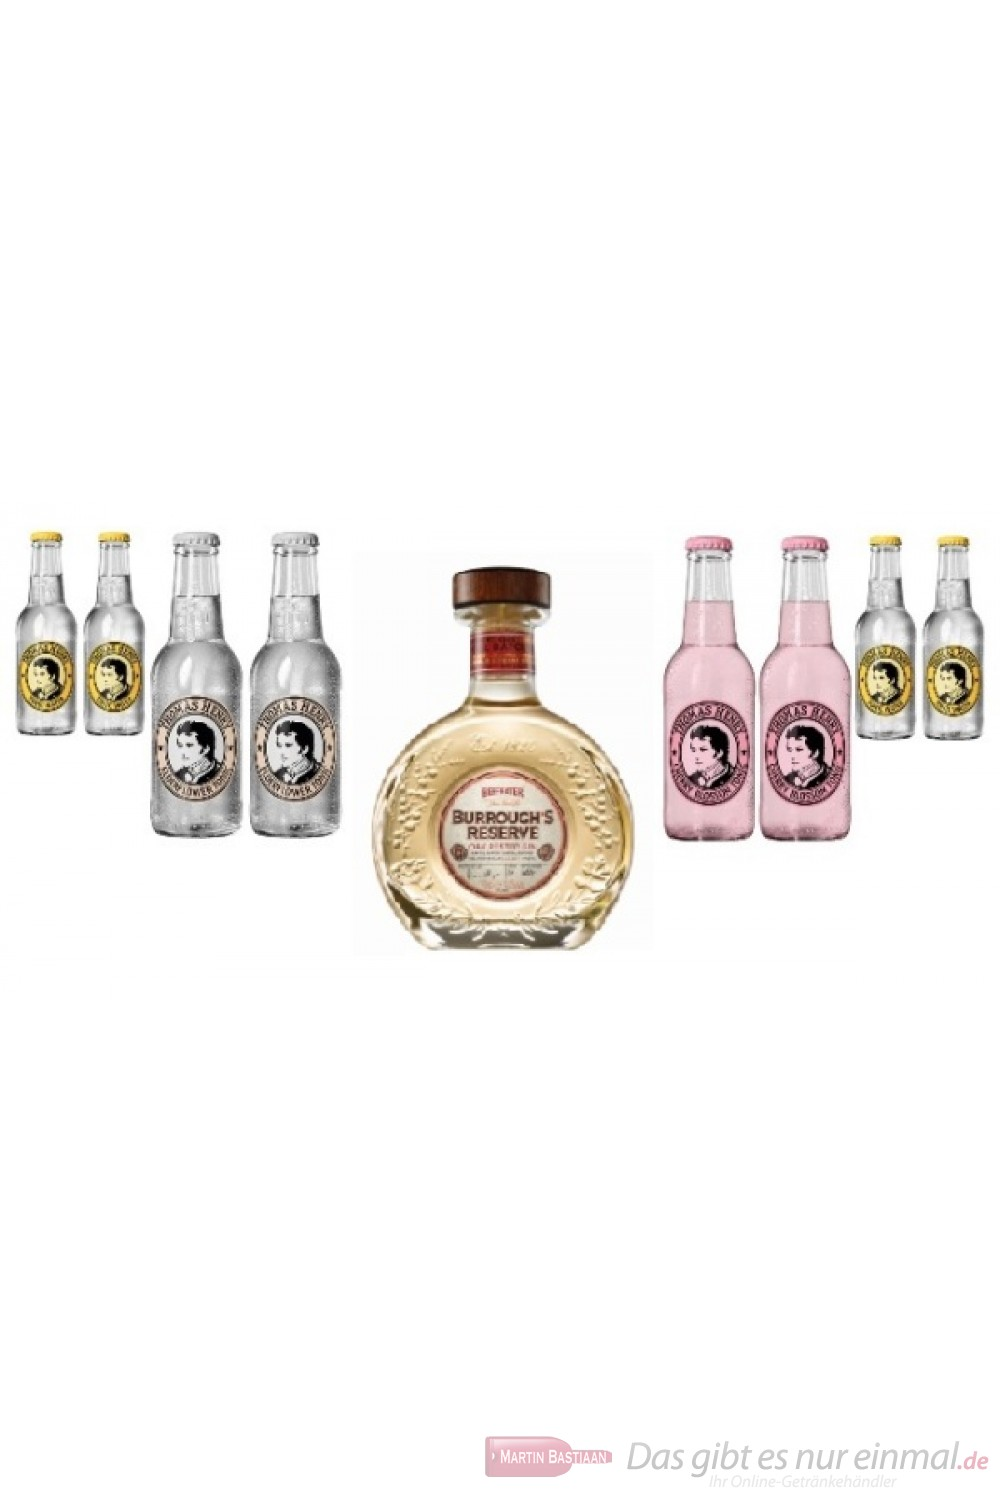 Beefeater Burrough´s Reserve Tonic Water Mix Pack